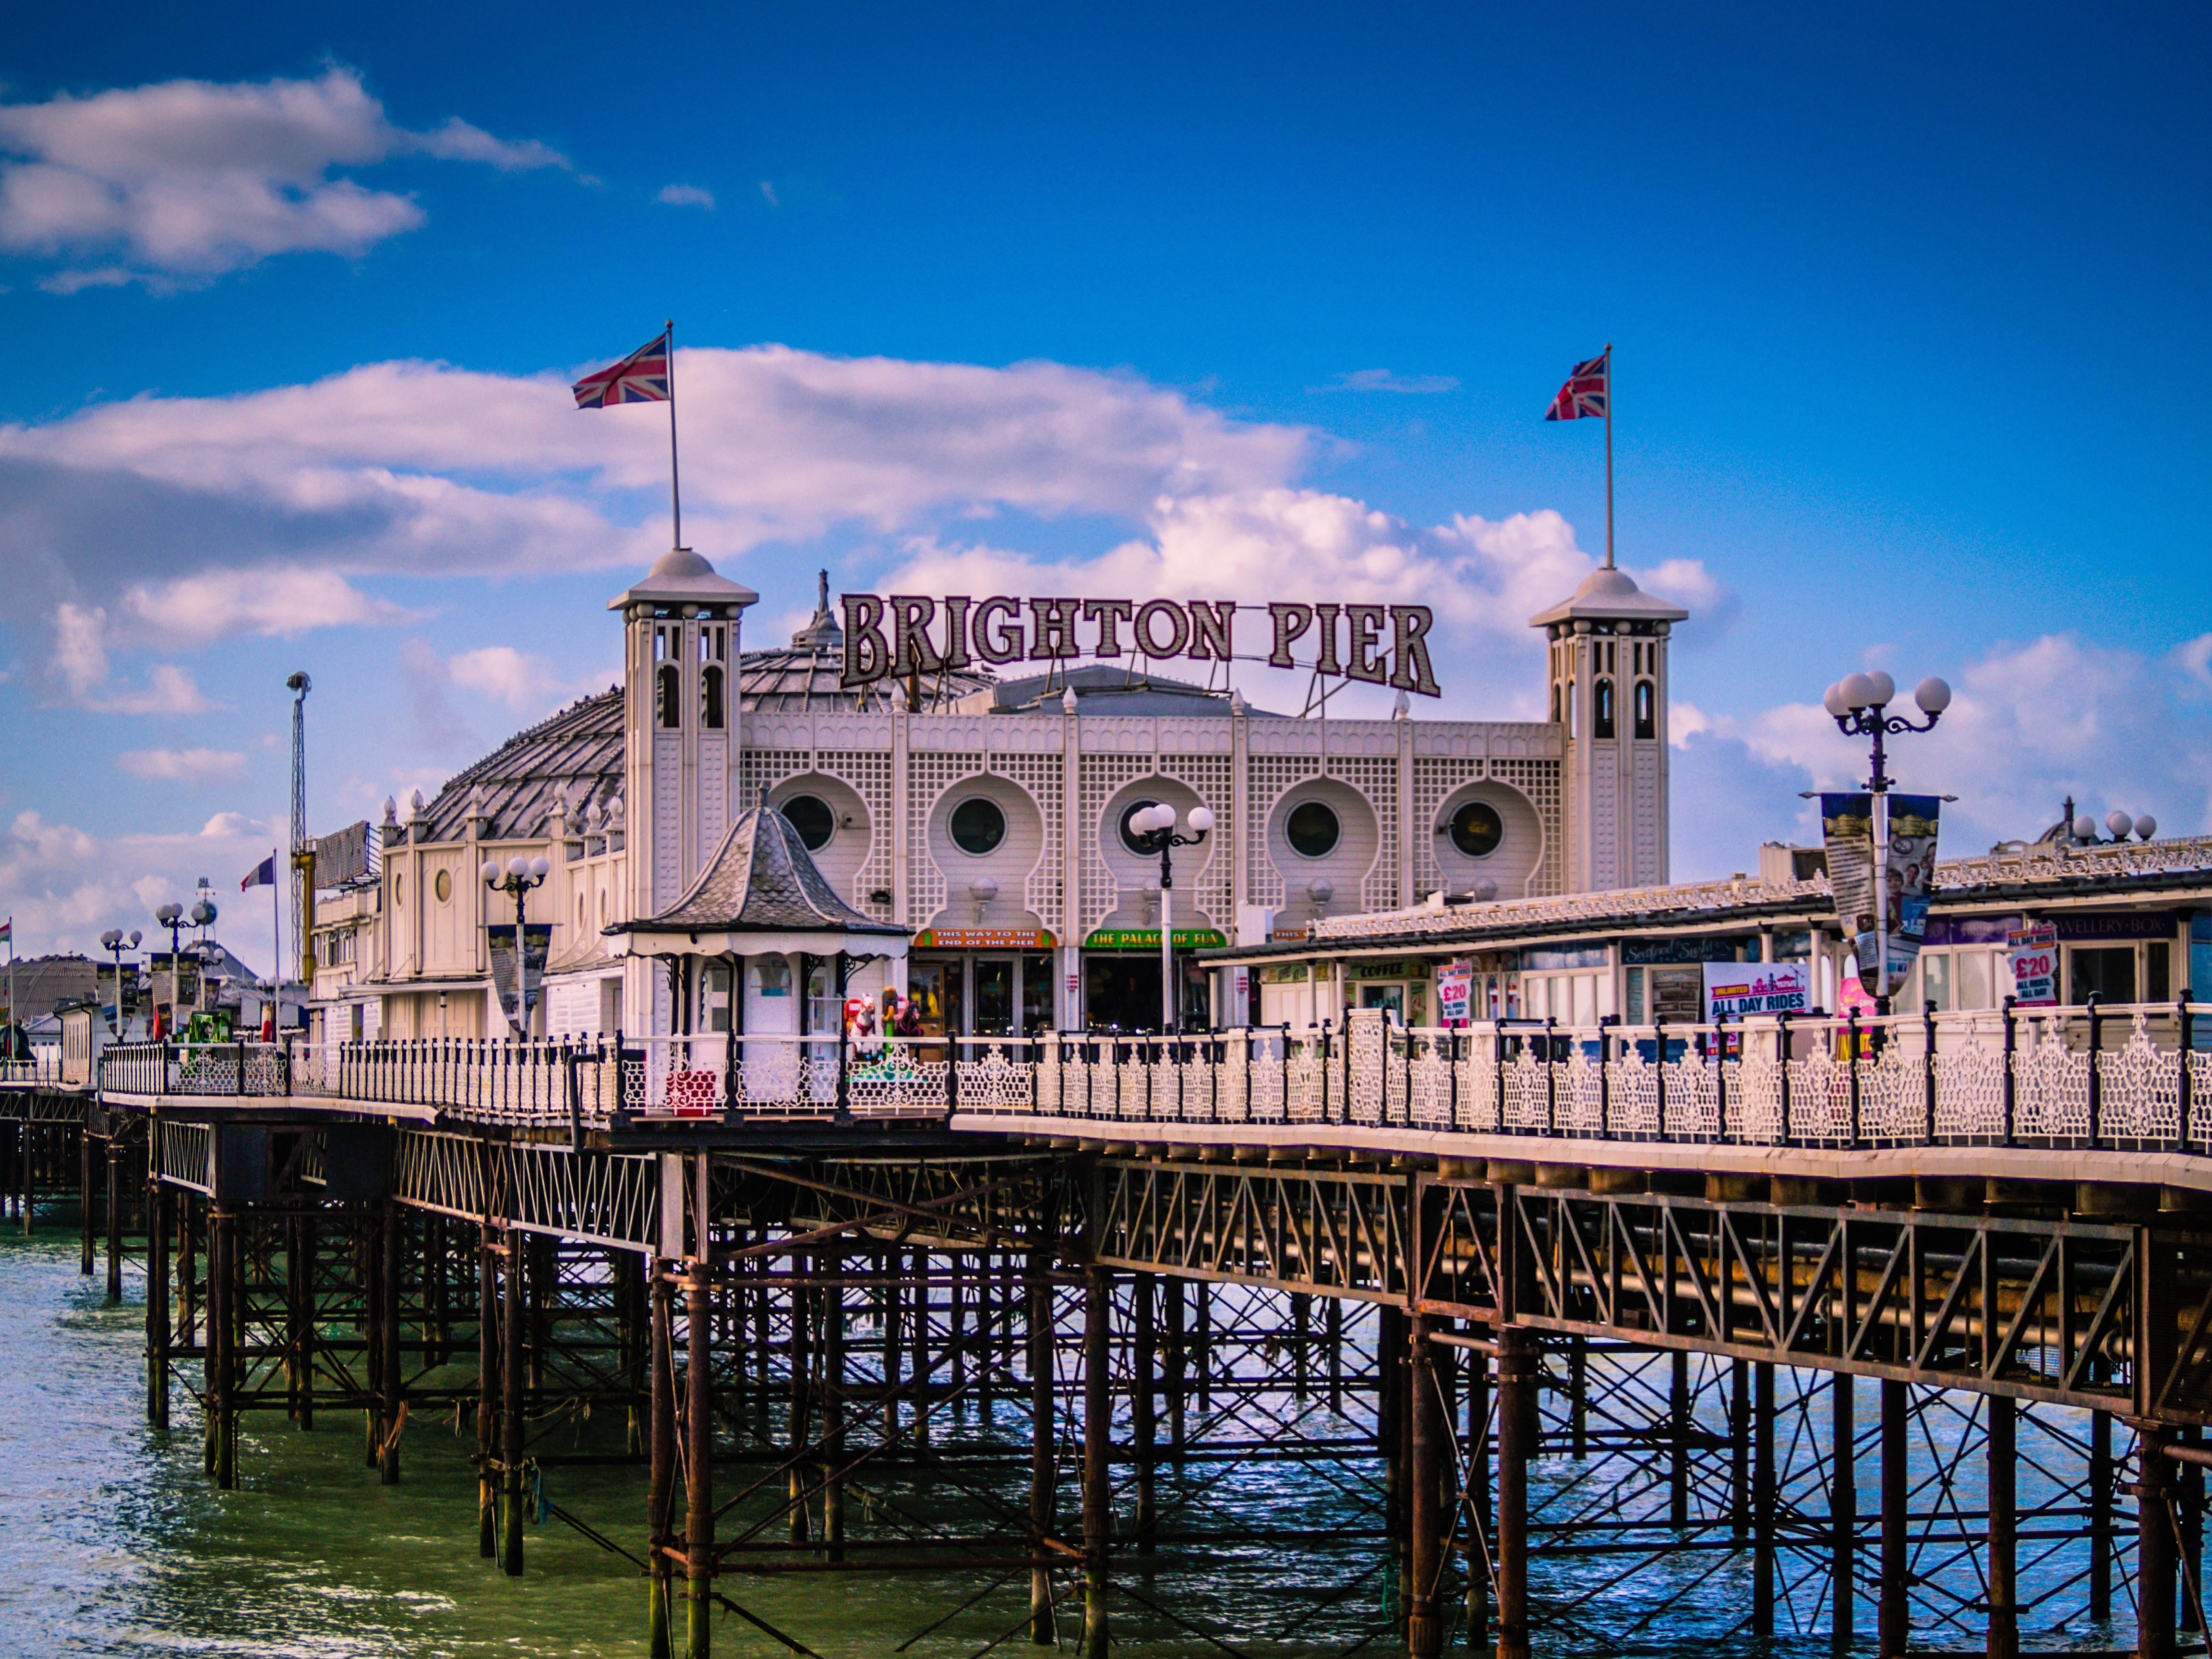 The Brighton Pier on a beautiful sunny day with blue skies and fluffy clouds